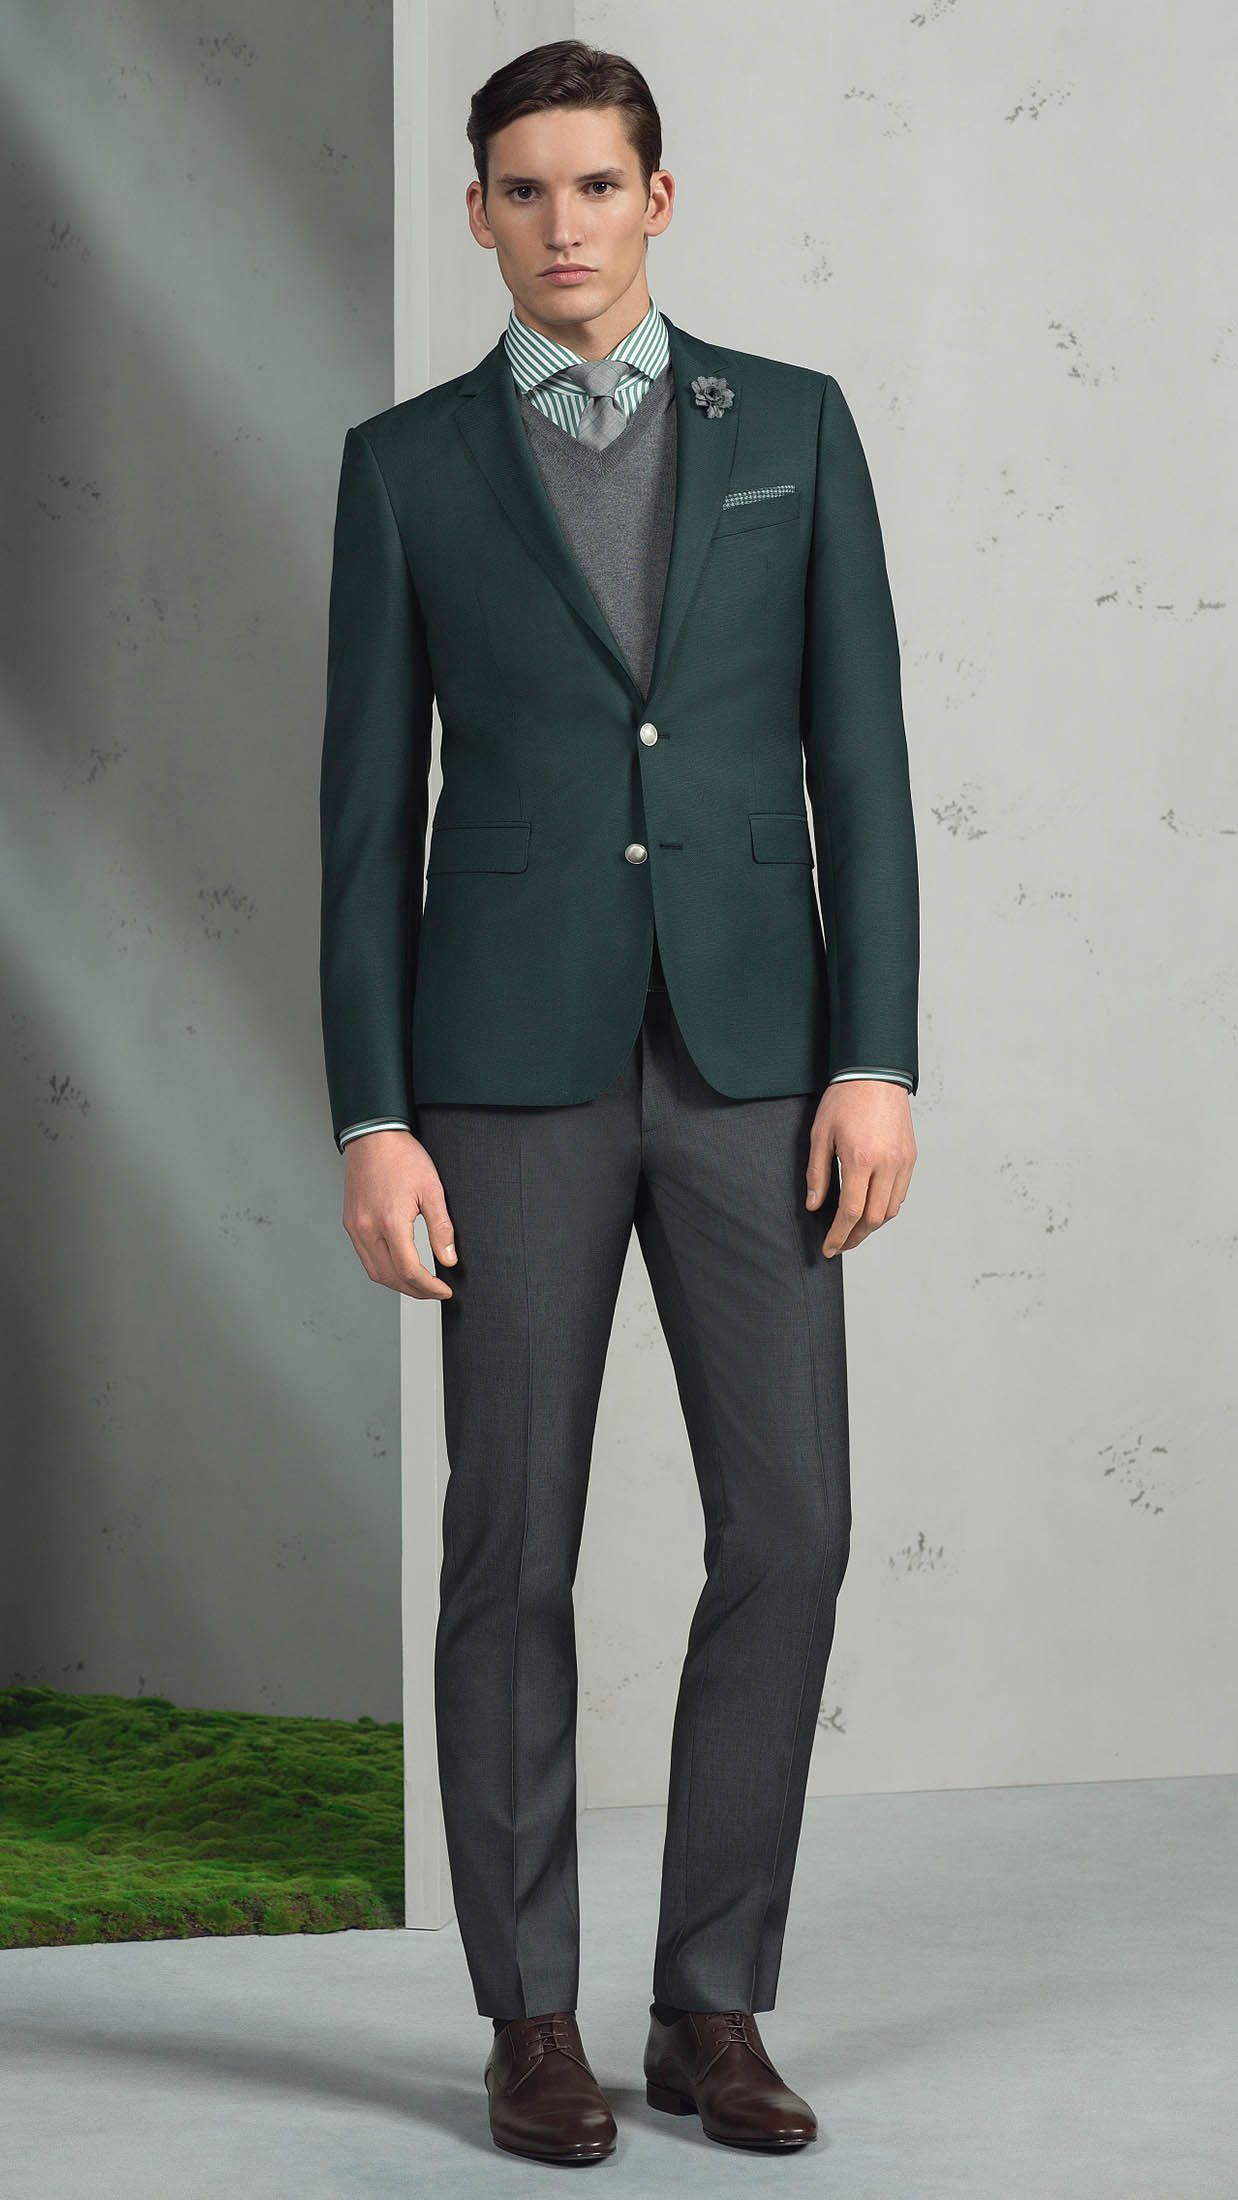 A Modern Mans Sophisticated Closet Should Always Include Such Stylish Essentials As Hunter Green Suit Jacket And Charcoal Dress Pants